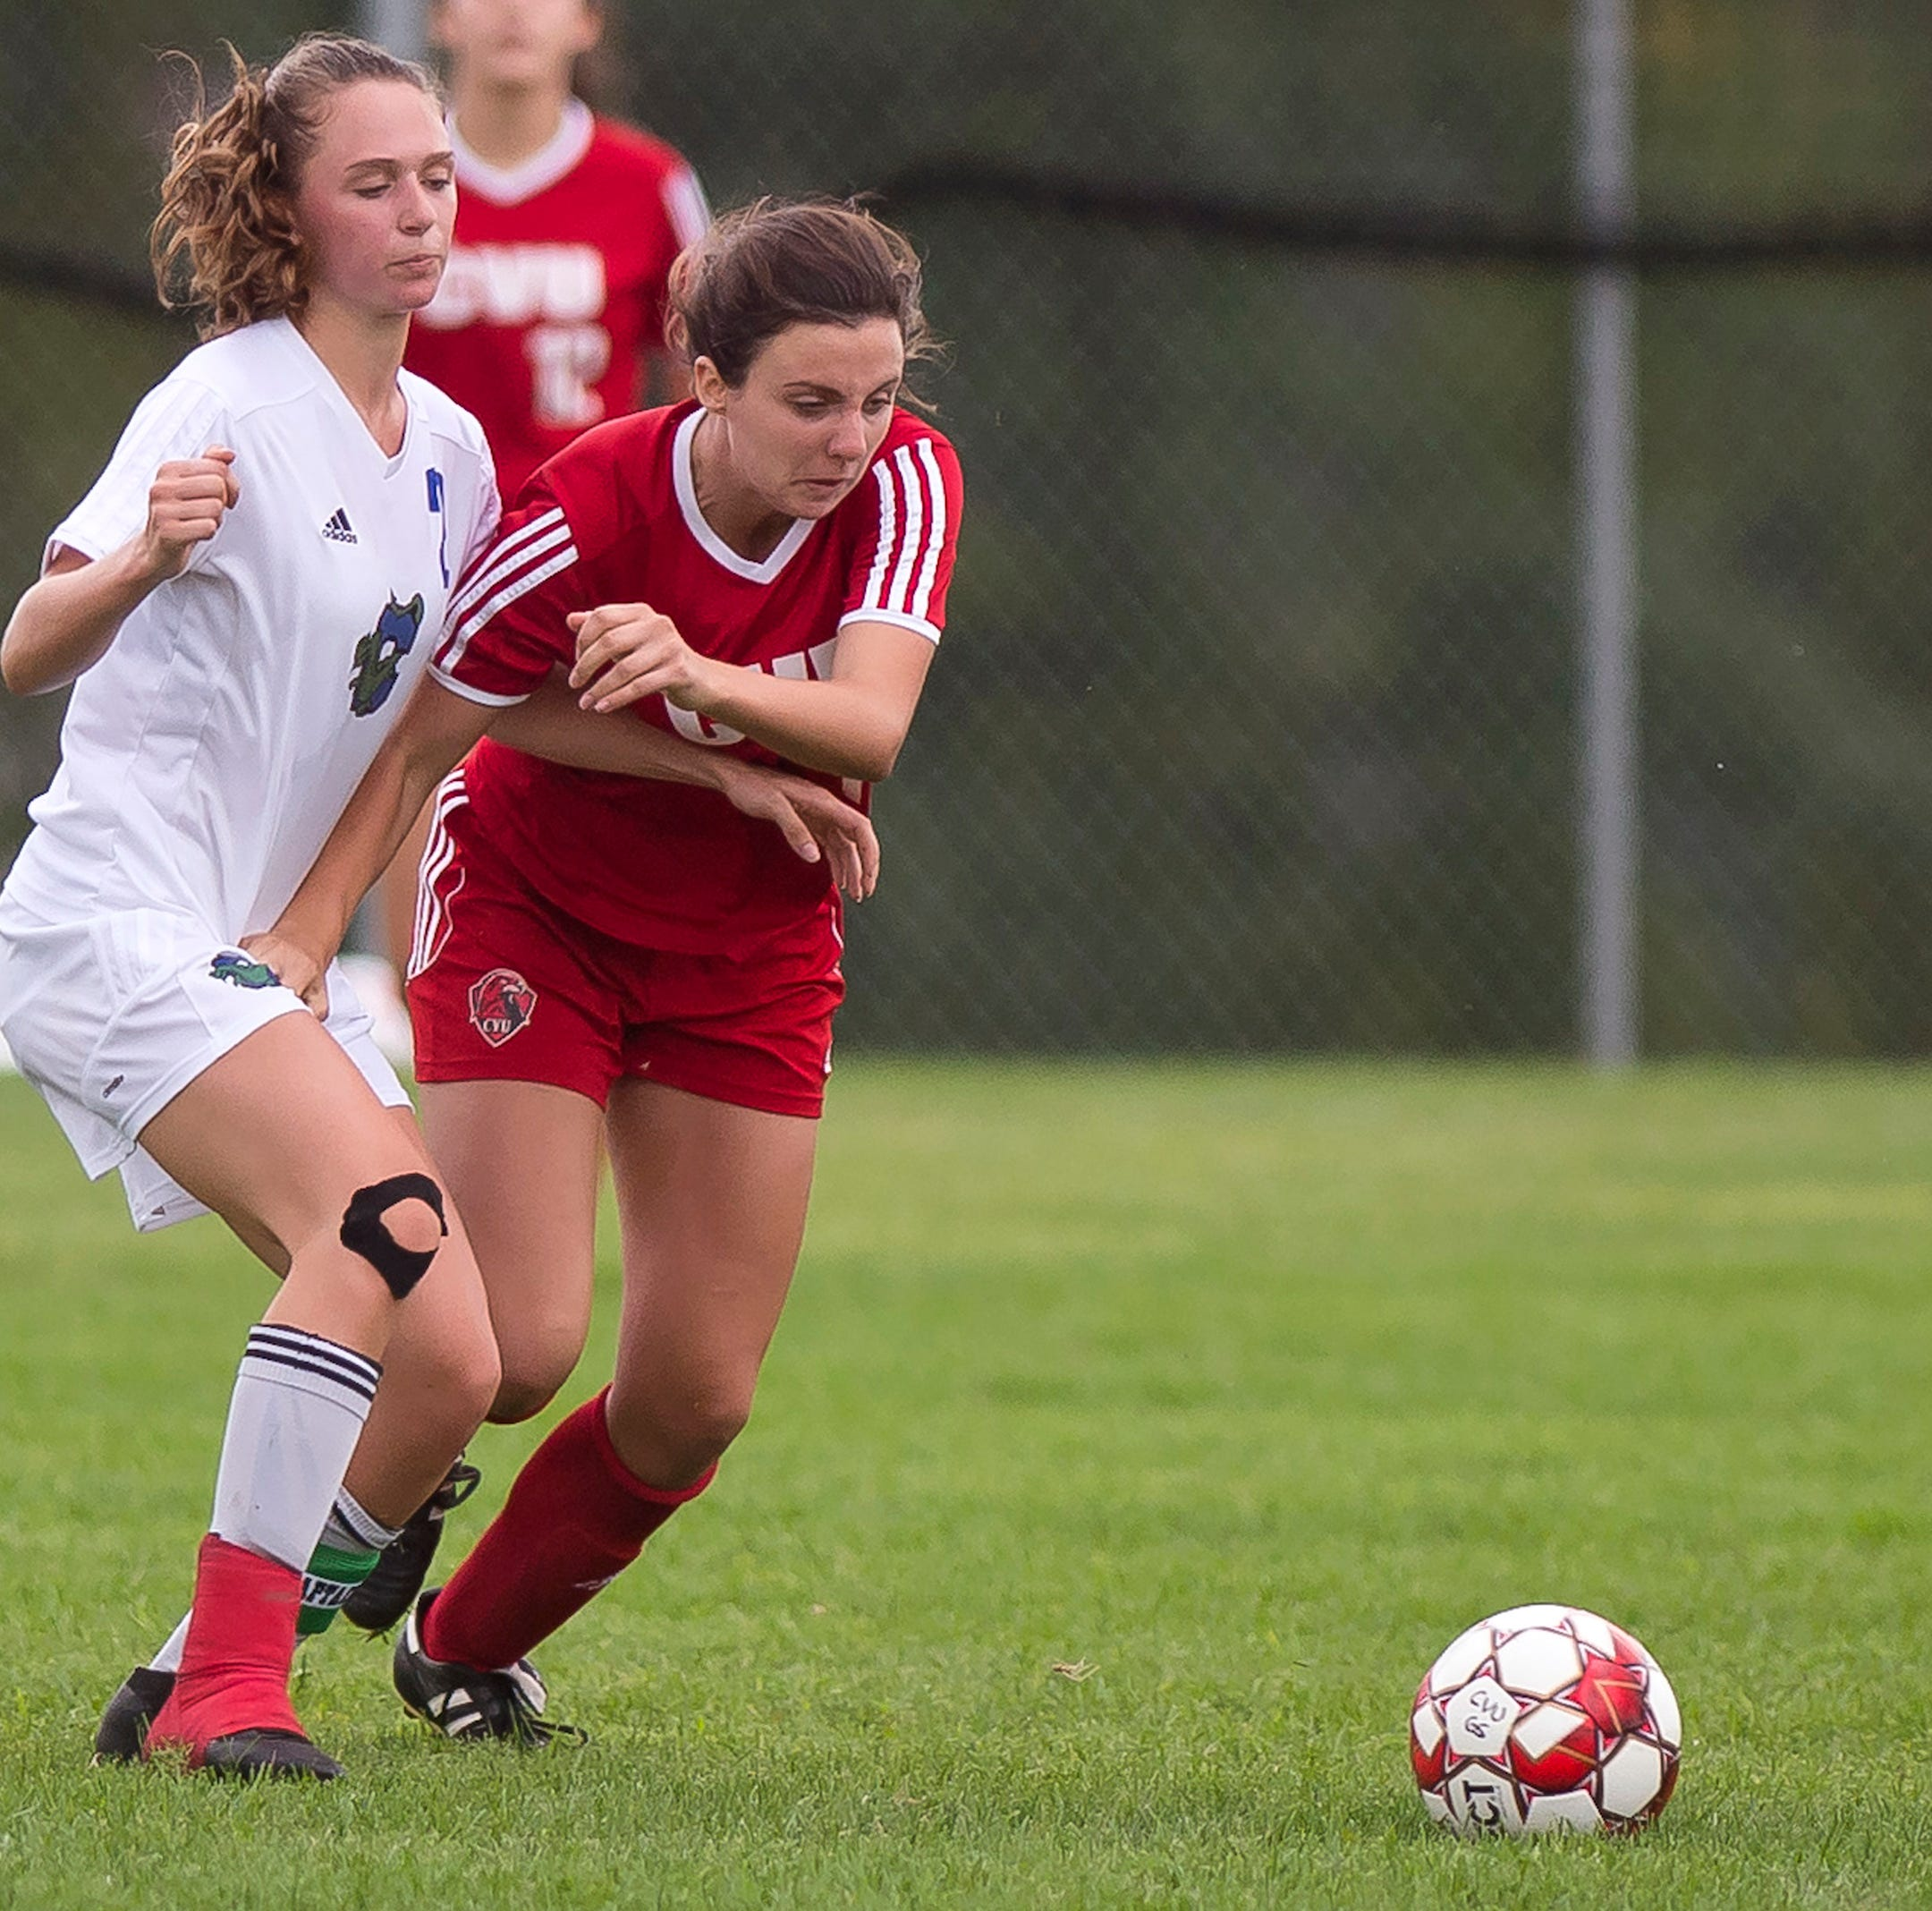 CVU girls soccer bests St. Johnsbury with 4-goal outburst